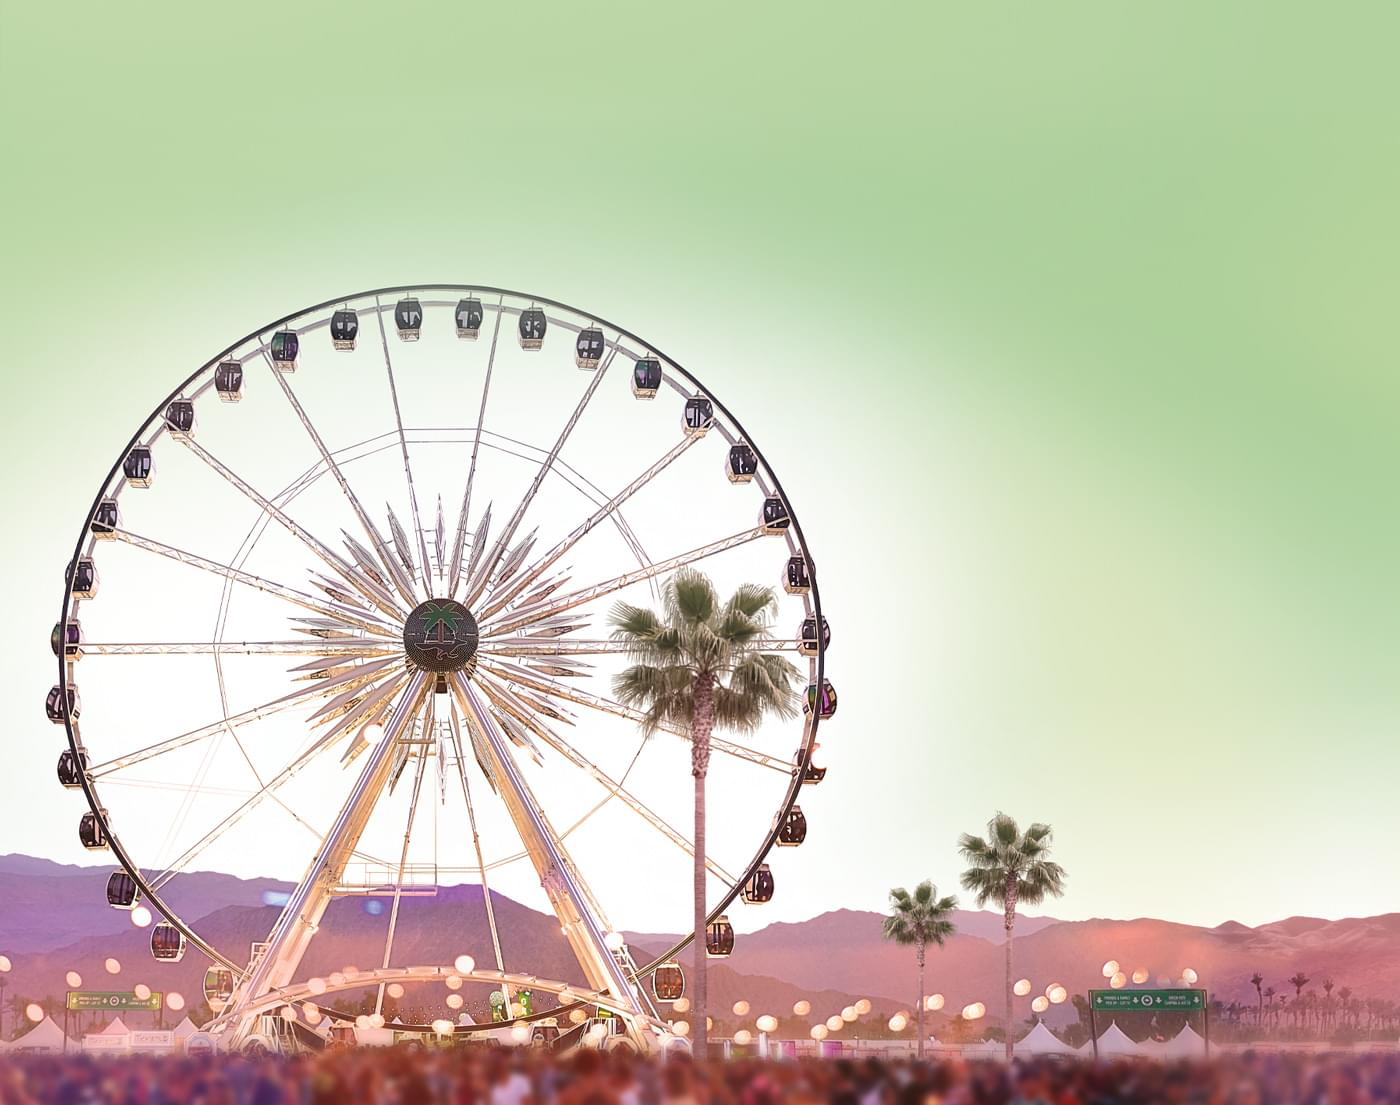 Coachella is reportedly being linked to a spike in herpes